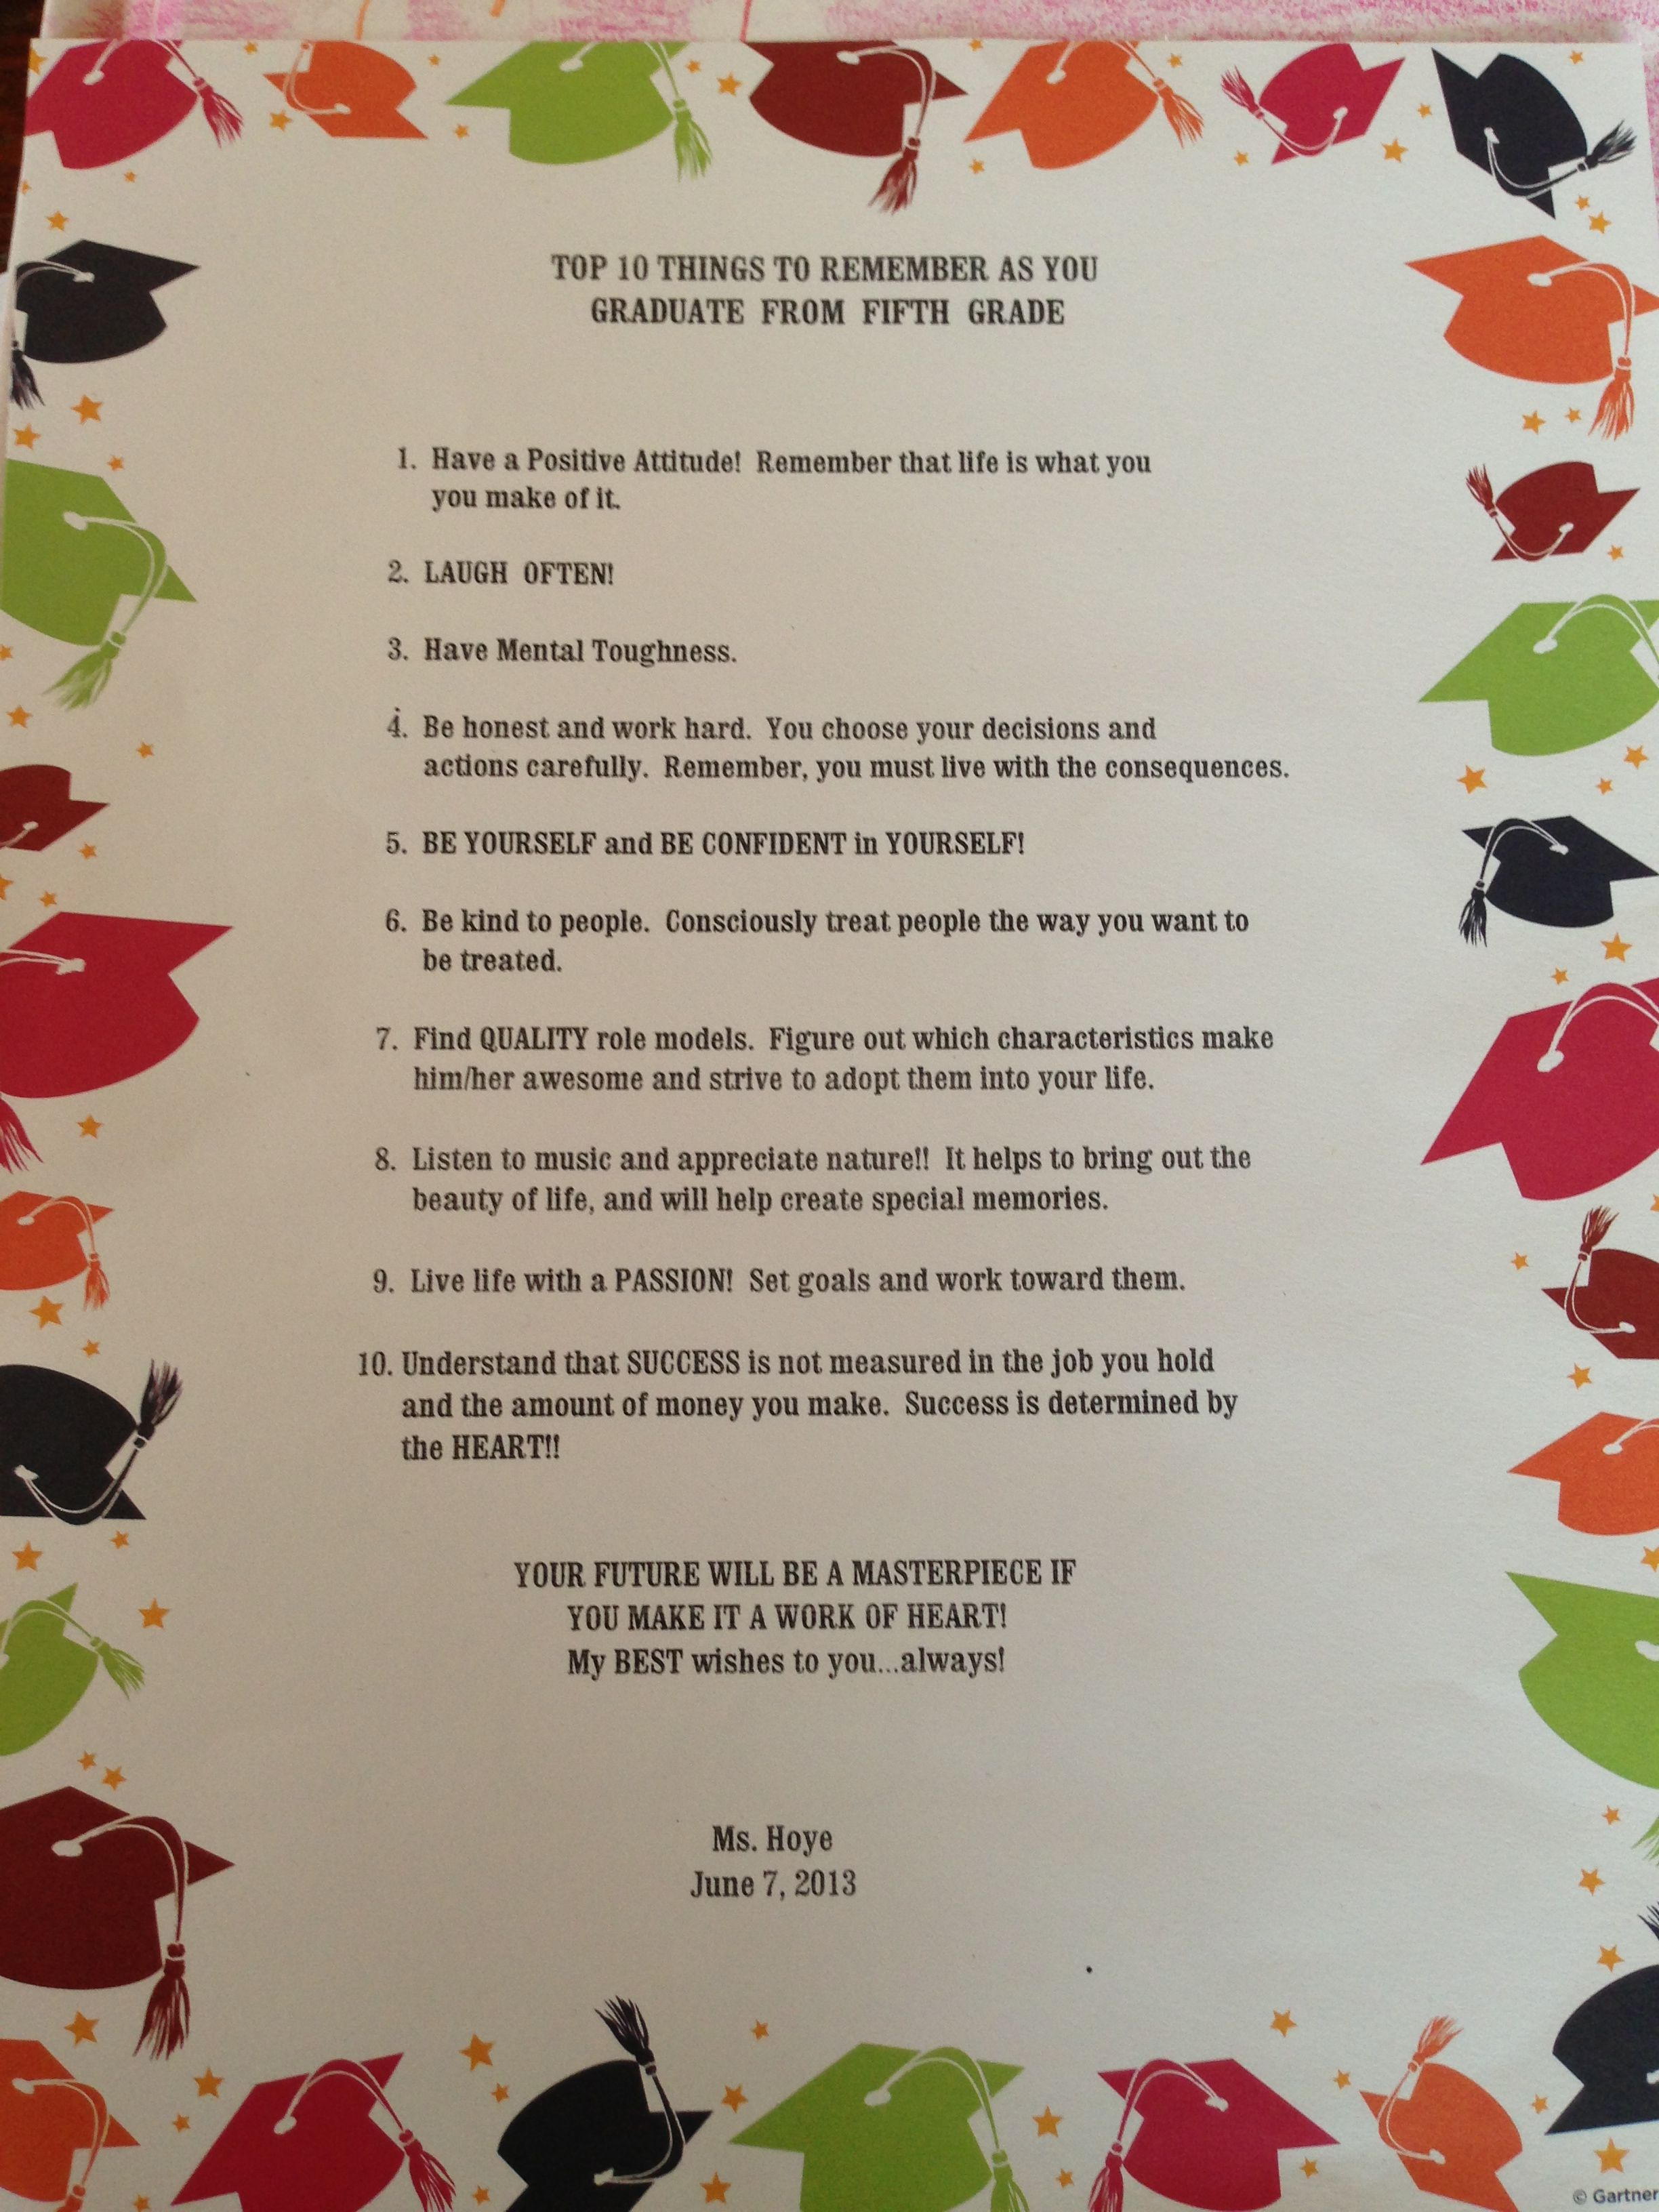 Words of wisdom at 5th grade graduation from clay39s wonderful teacher stuff for the kids for 5th grade graduation ideas